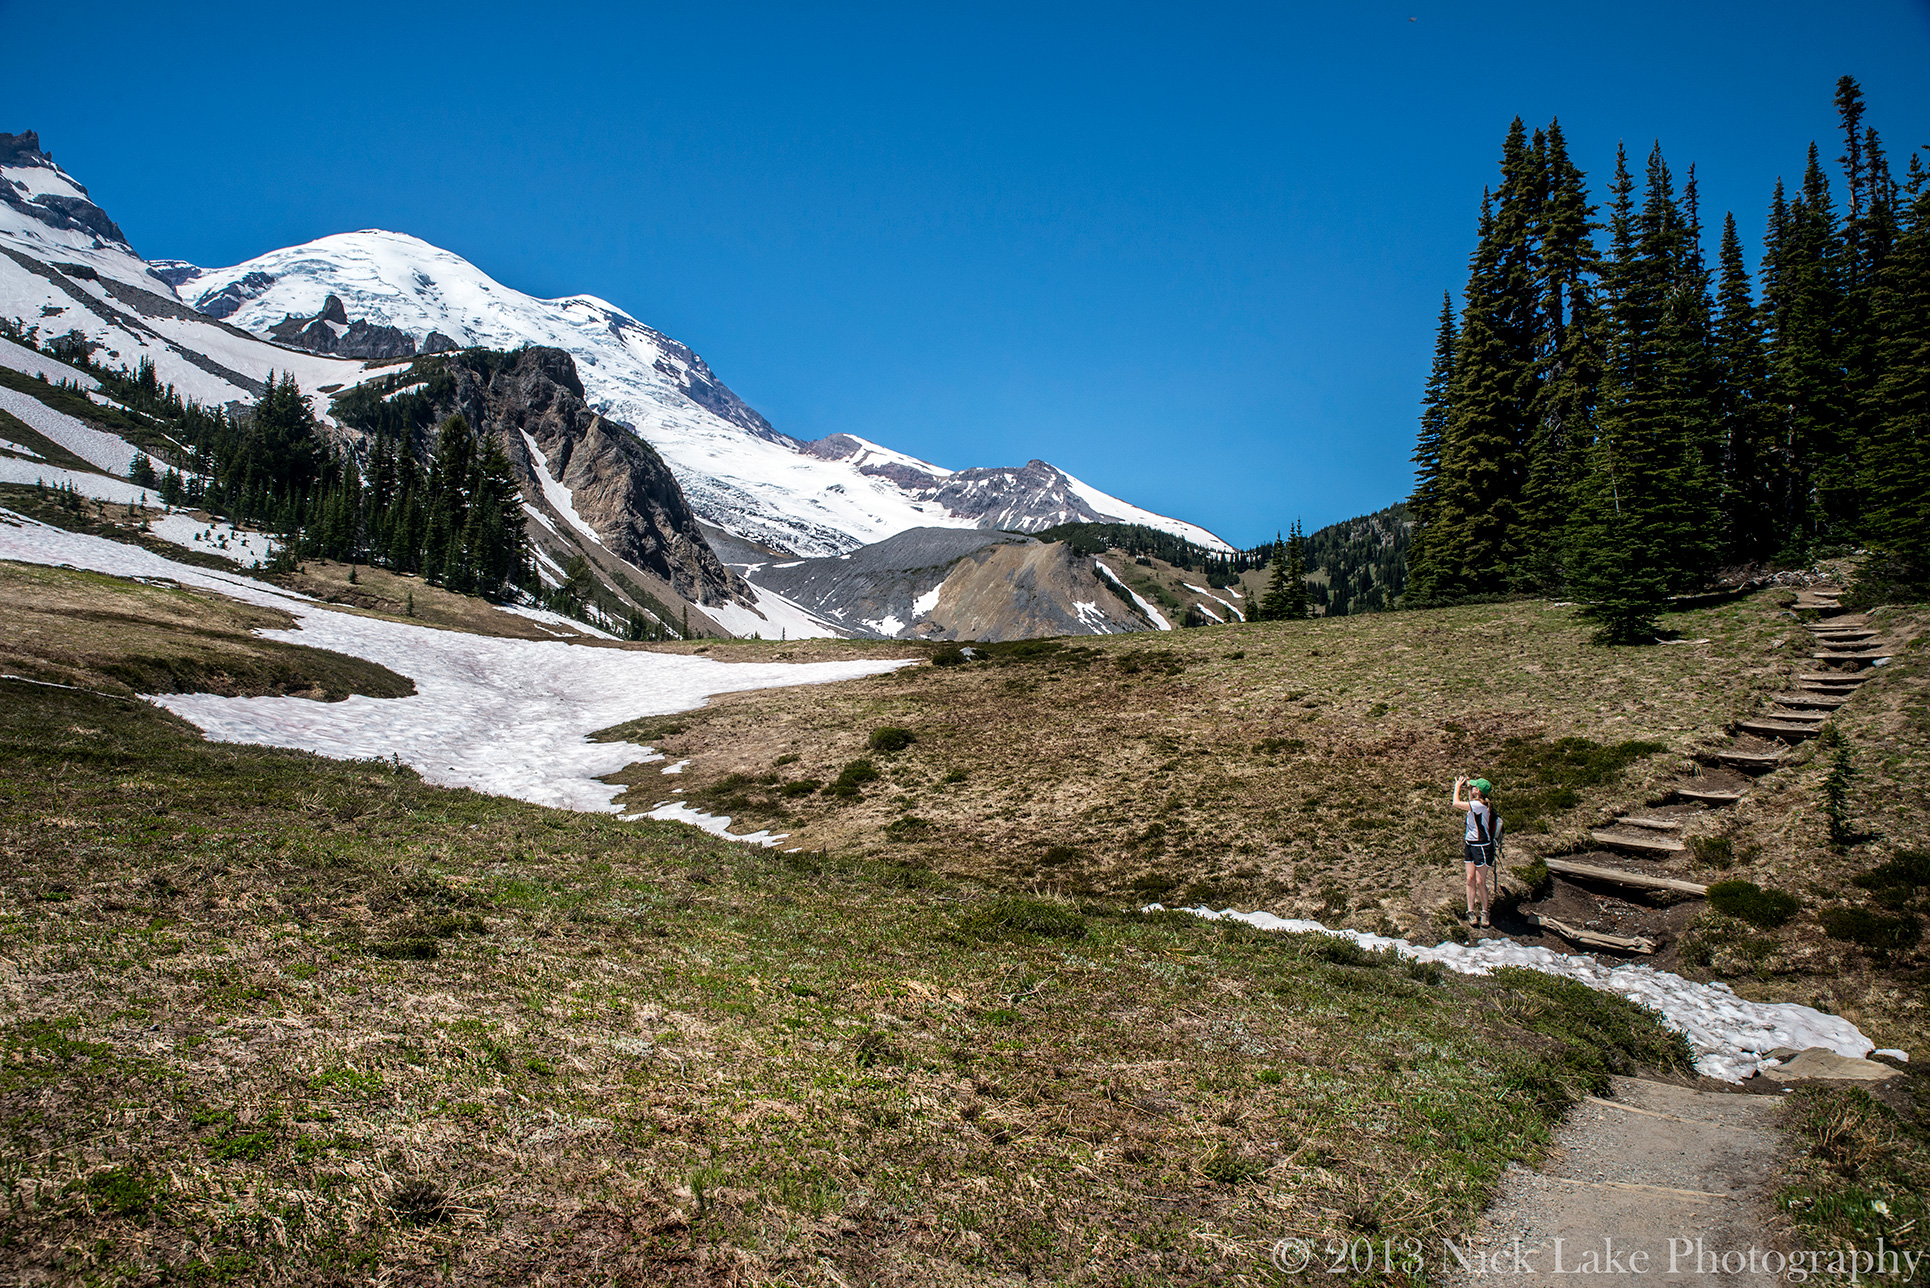 The expansive Summer Land meadow stretches up towards Mt. Rainier's peak